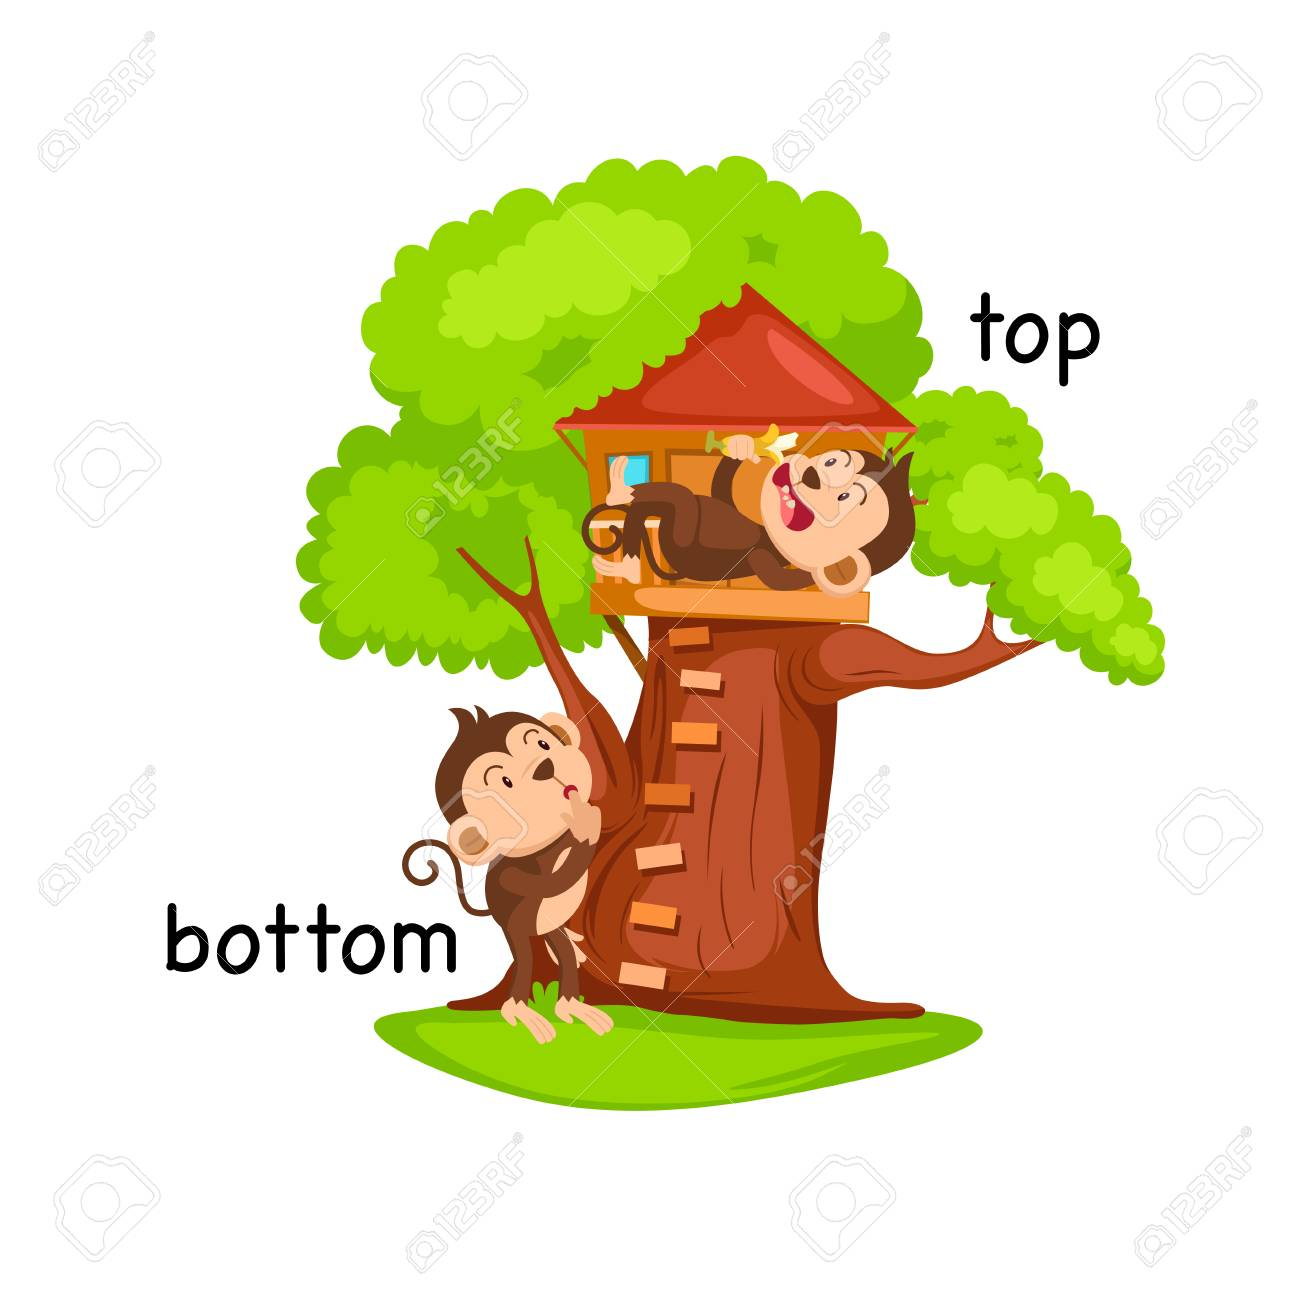 Opposite words bottom and top vector illustration.